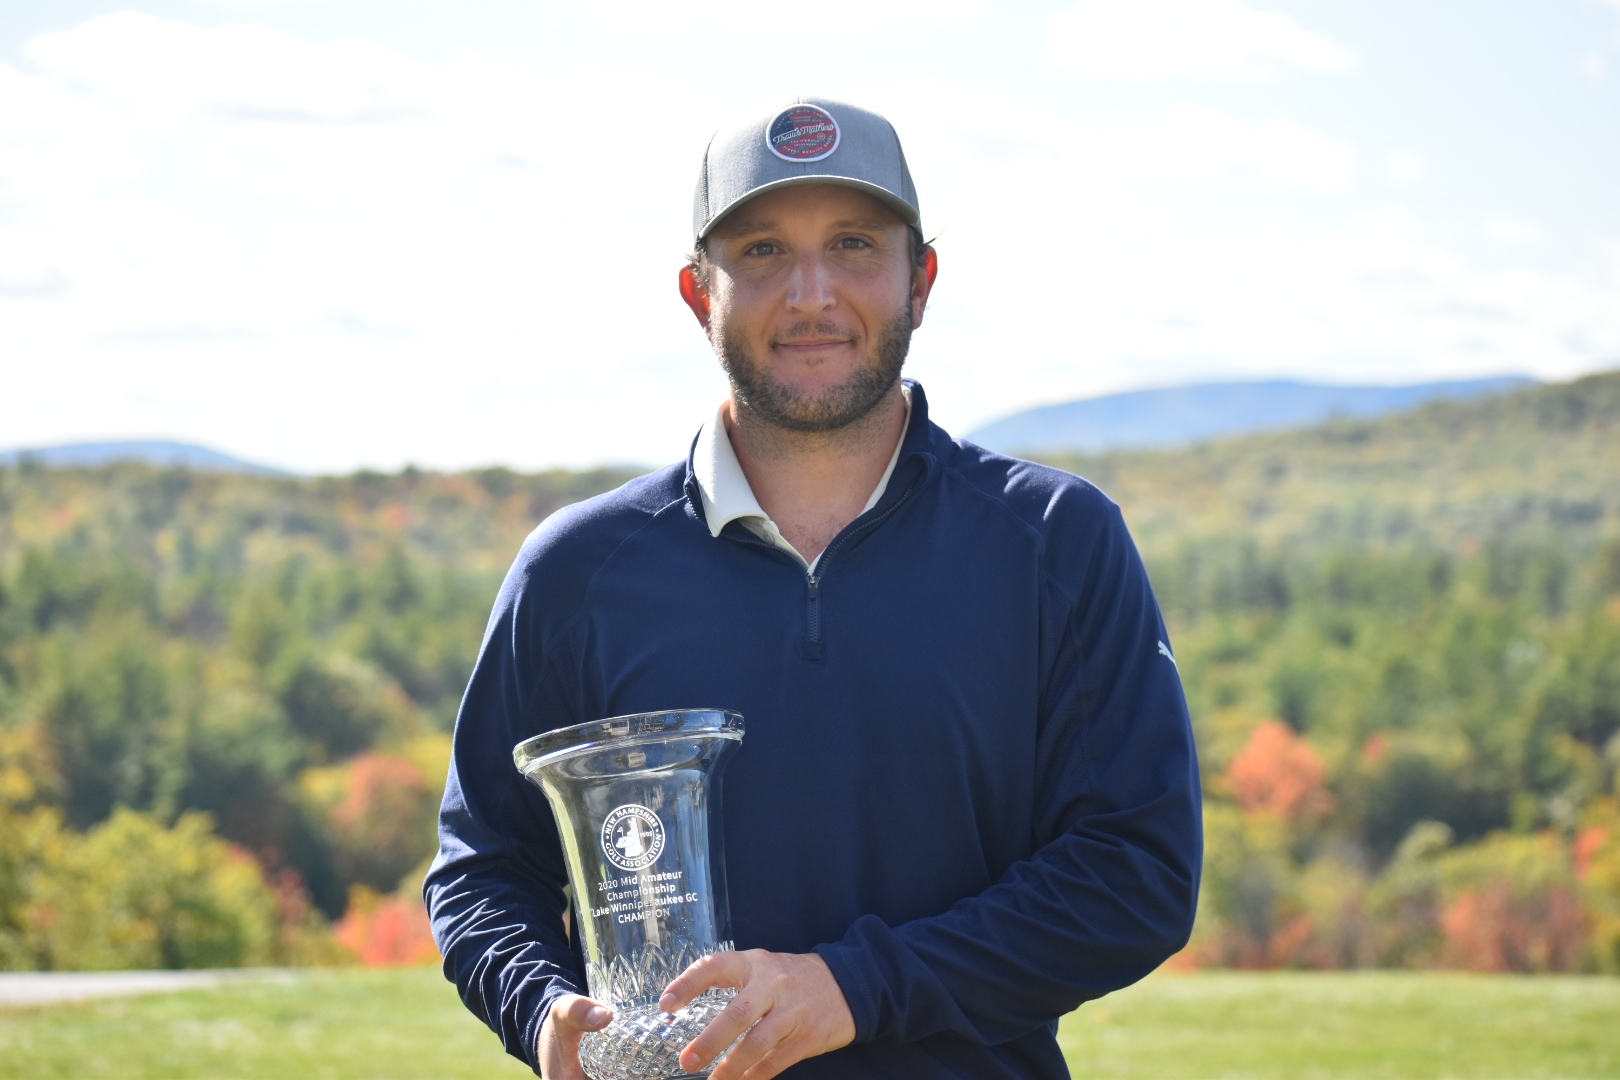 Ryan Kohler Closes Out 2020 Championship Season With His Second NH Mid-Amateur Title